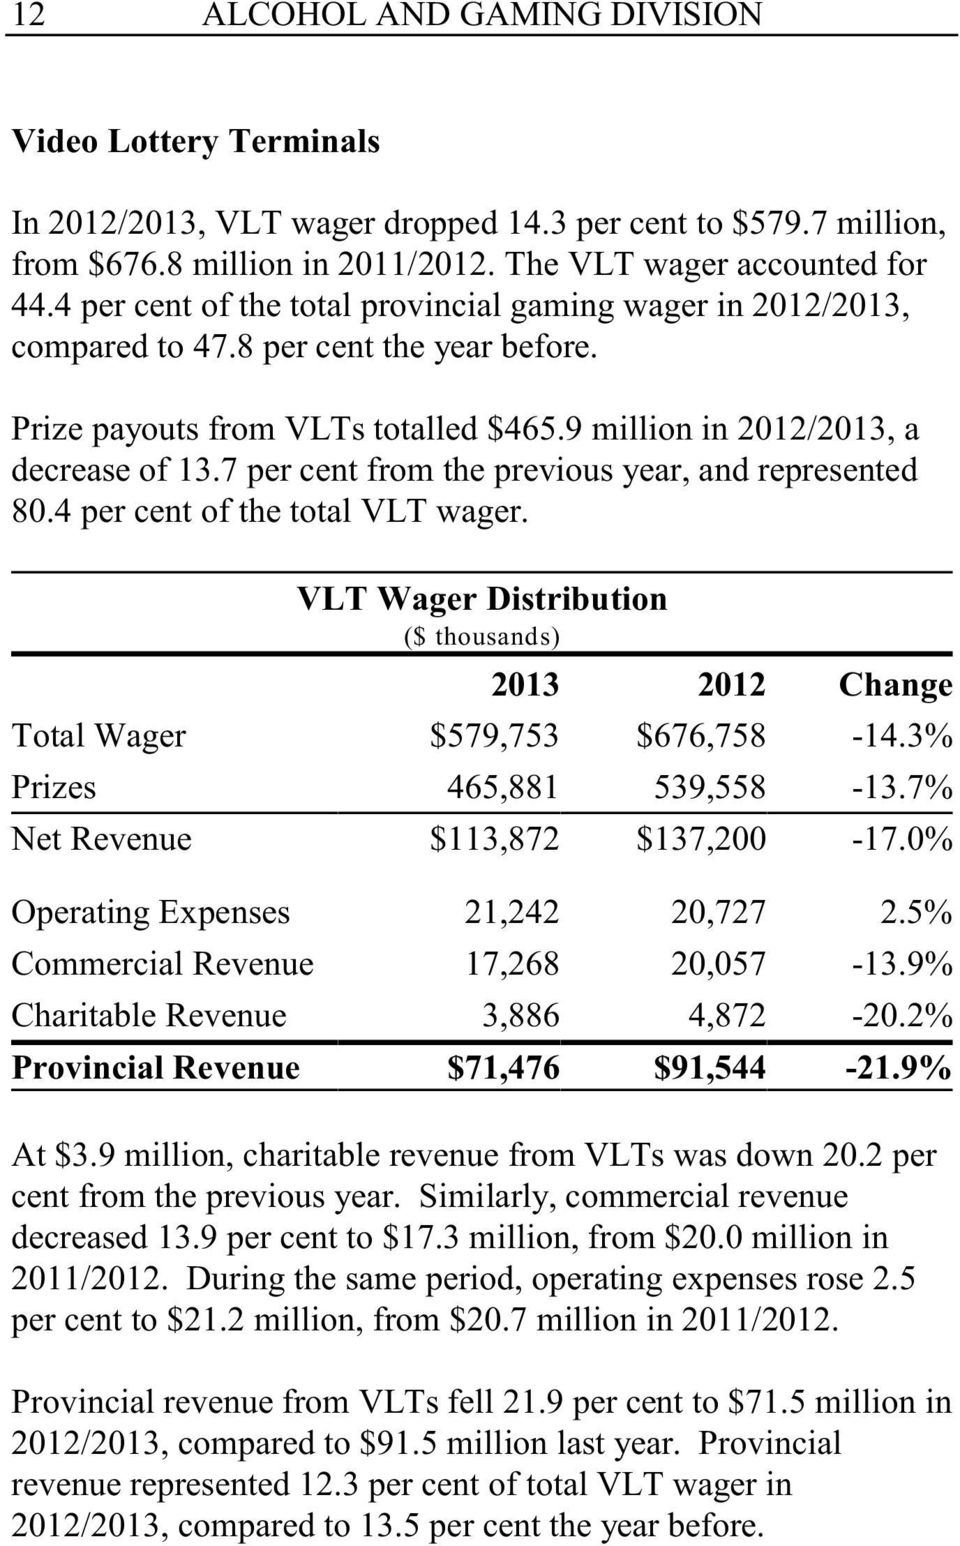 7 per cent from the previous year, and represented 80.4 per cent of the total VLT wager. VLT Wager Distribution ($ thousands) 2013 2012 Change Total Wager $579,753 $676,758-14.